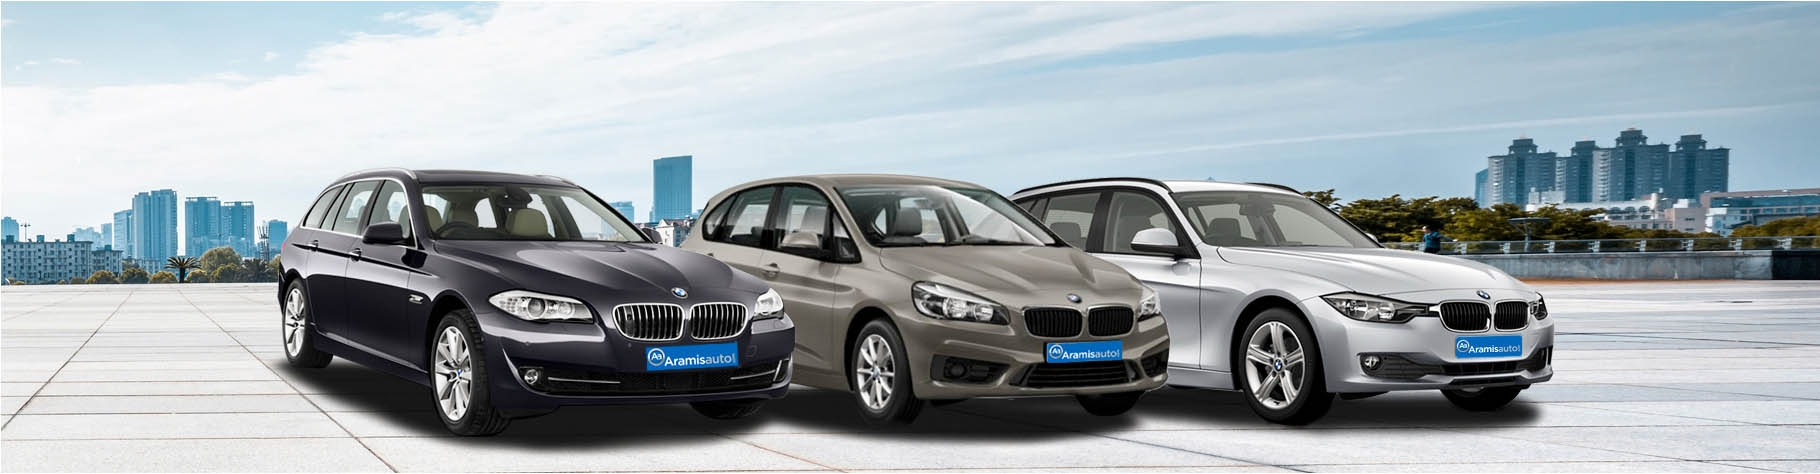 Guide d'achat BMW